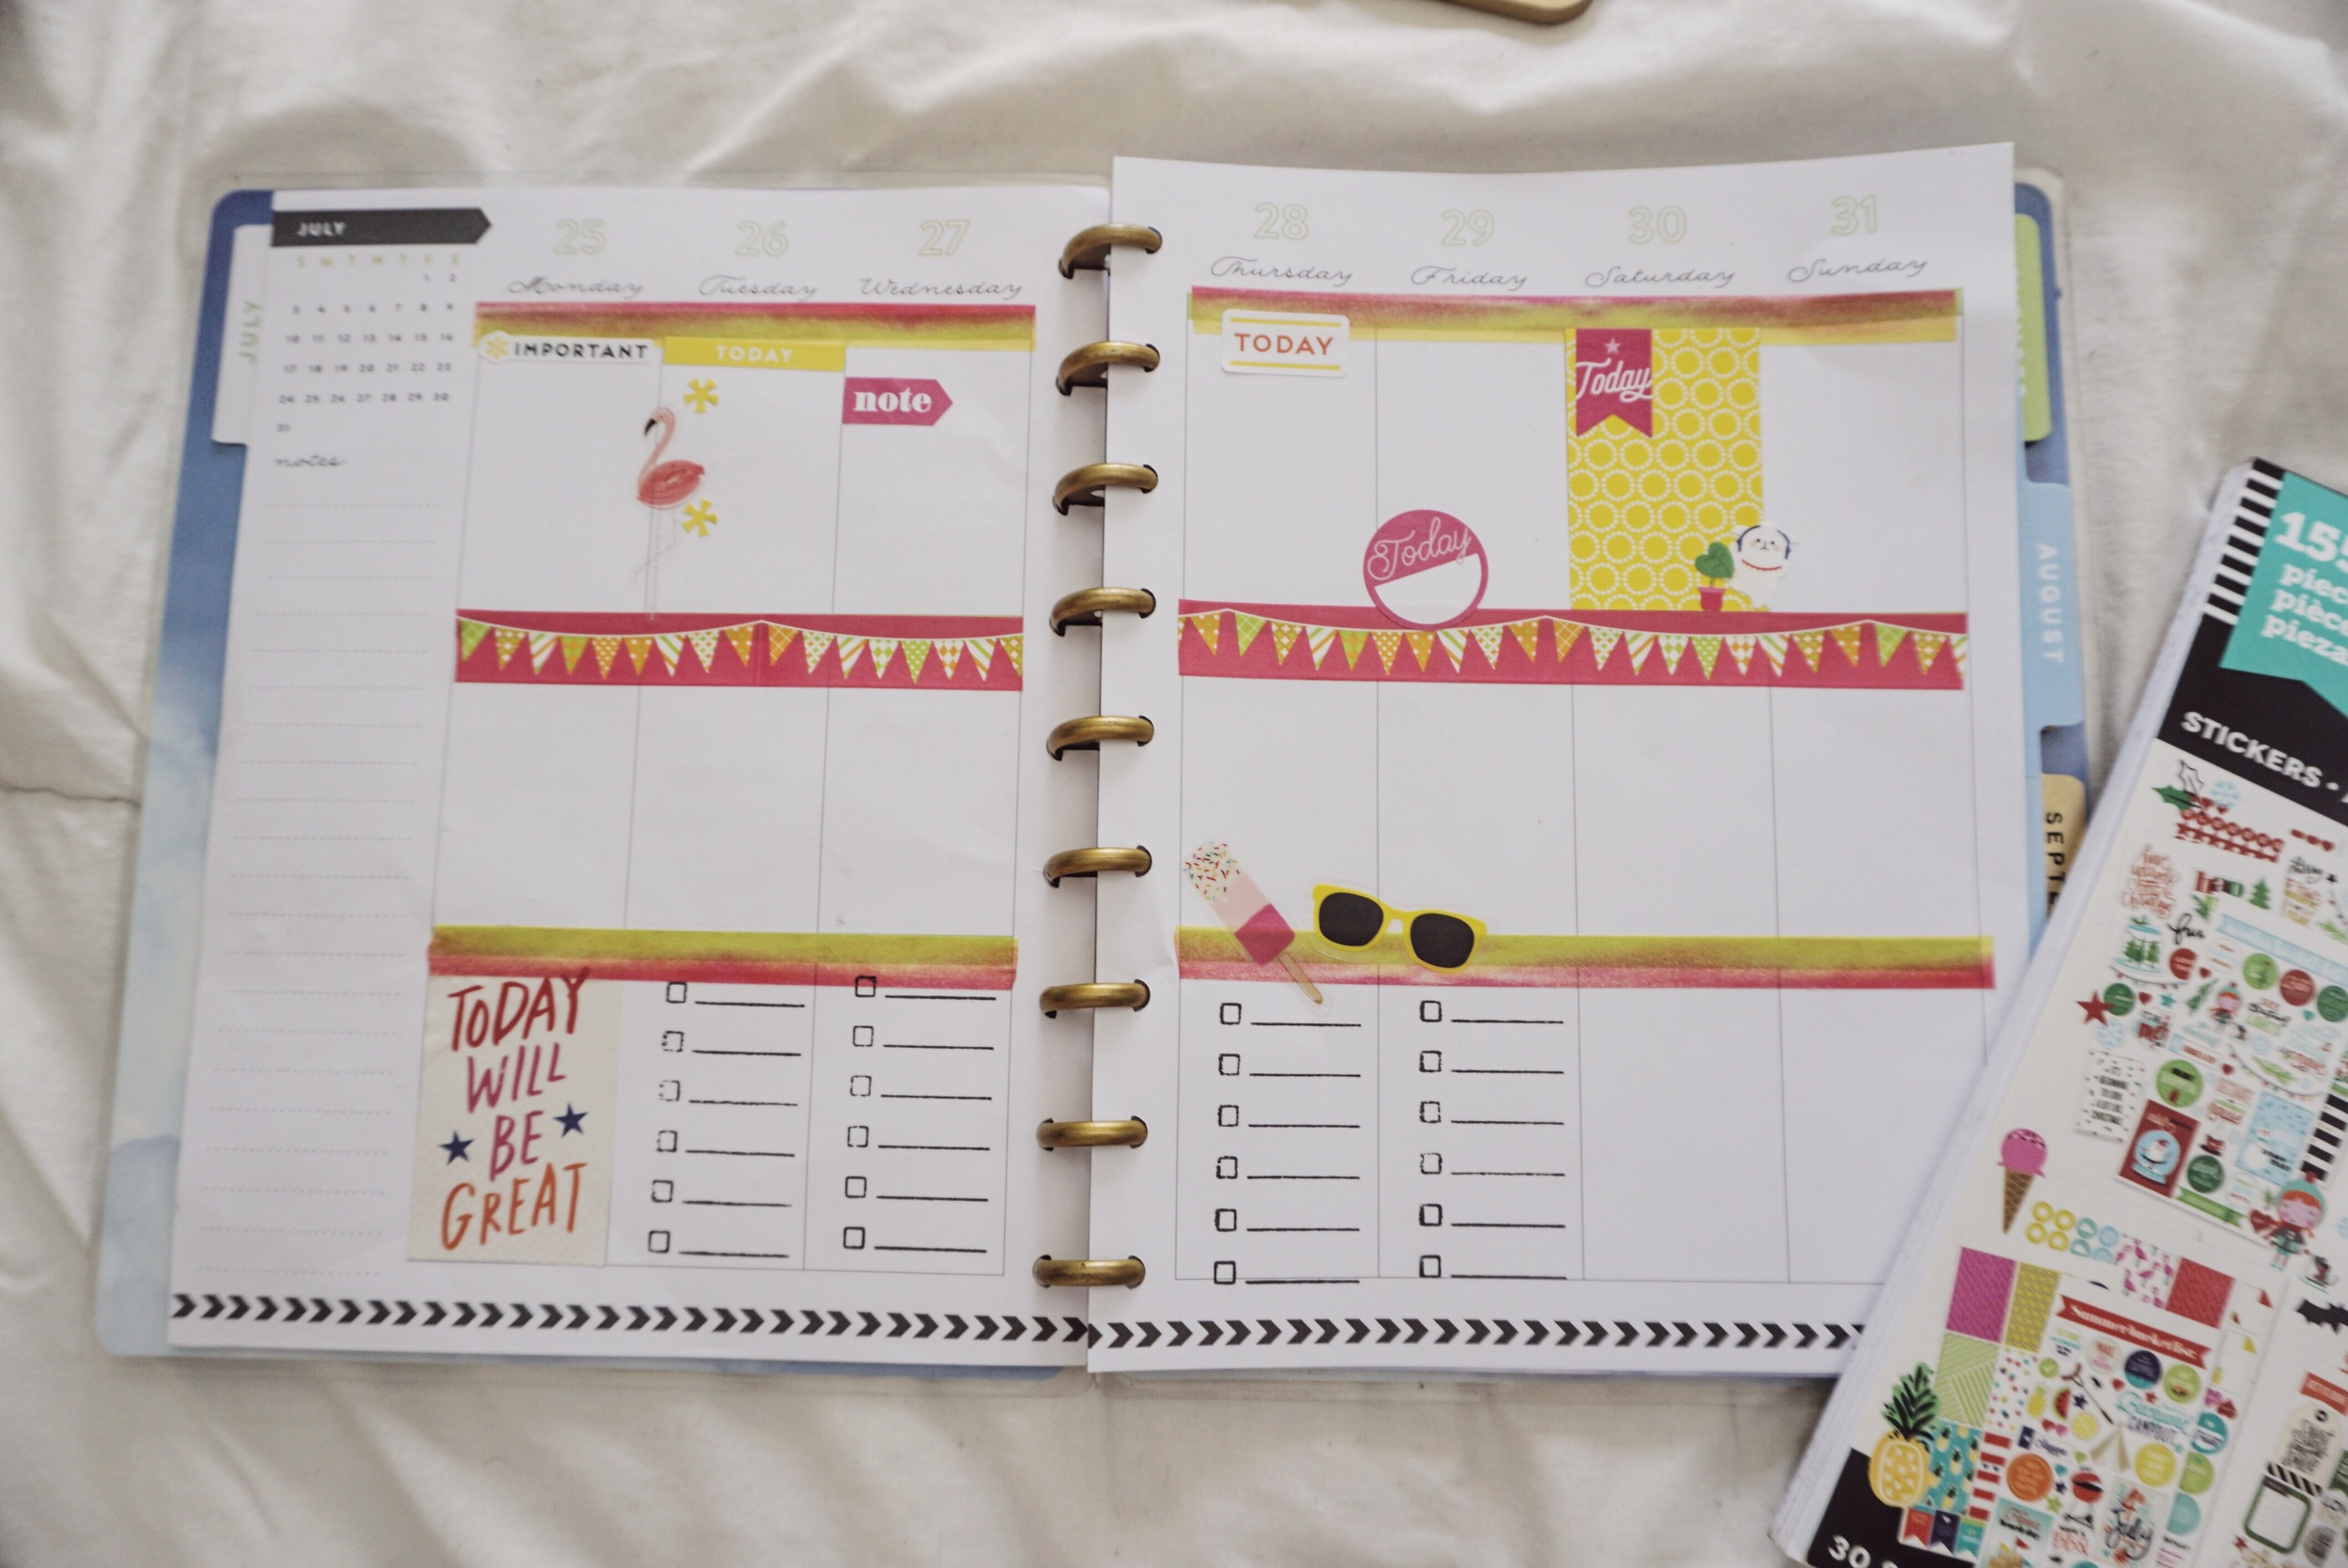 My Happy Planner weekly layout before the pen